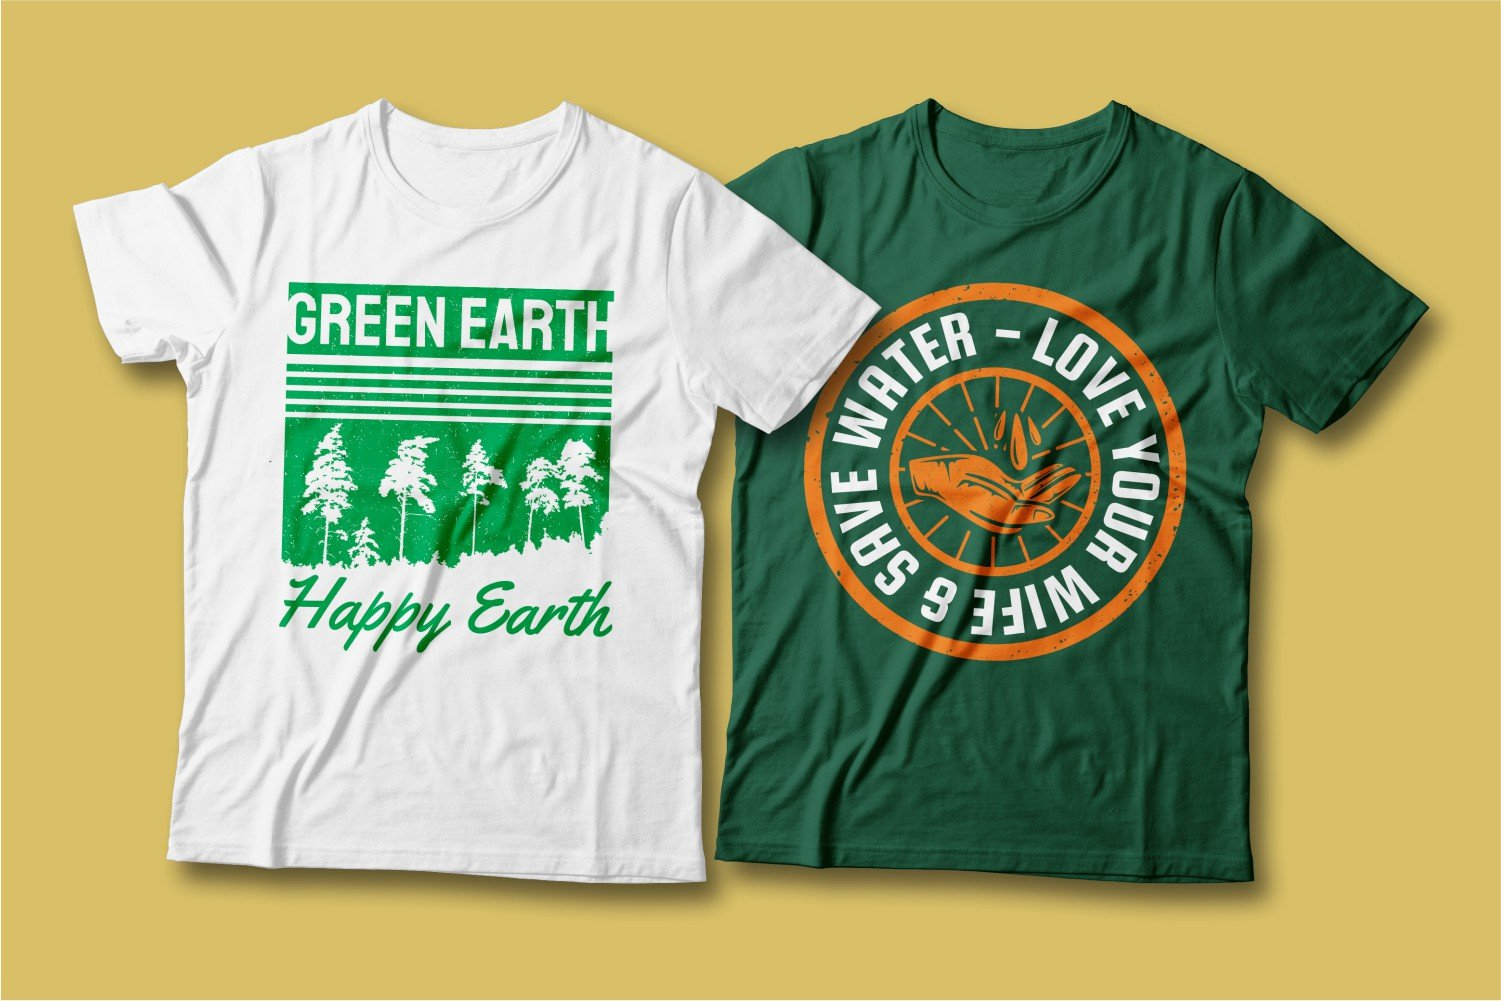 Two T-shirts - one white with a forest, the other green with an inscription about water conservation.